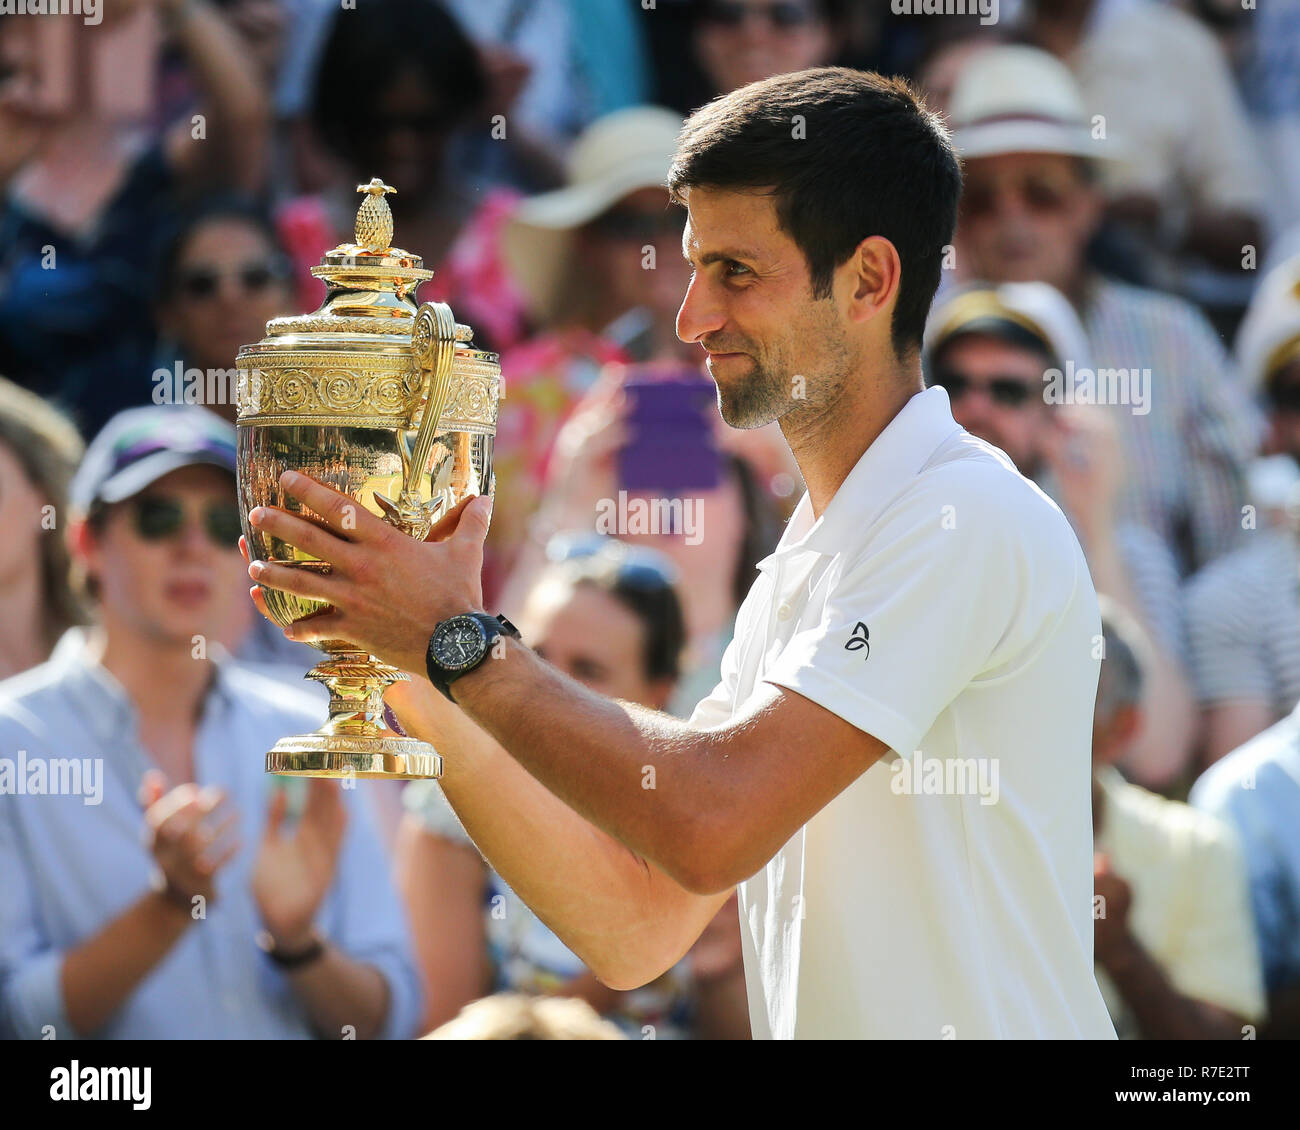 Serbian player Novak Djokovic during trophy presentation at Wimbledon, London, United Kingdom. - Stock Image